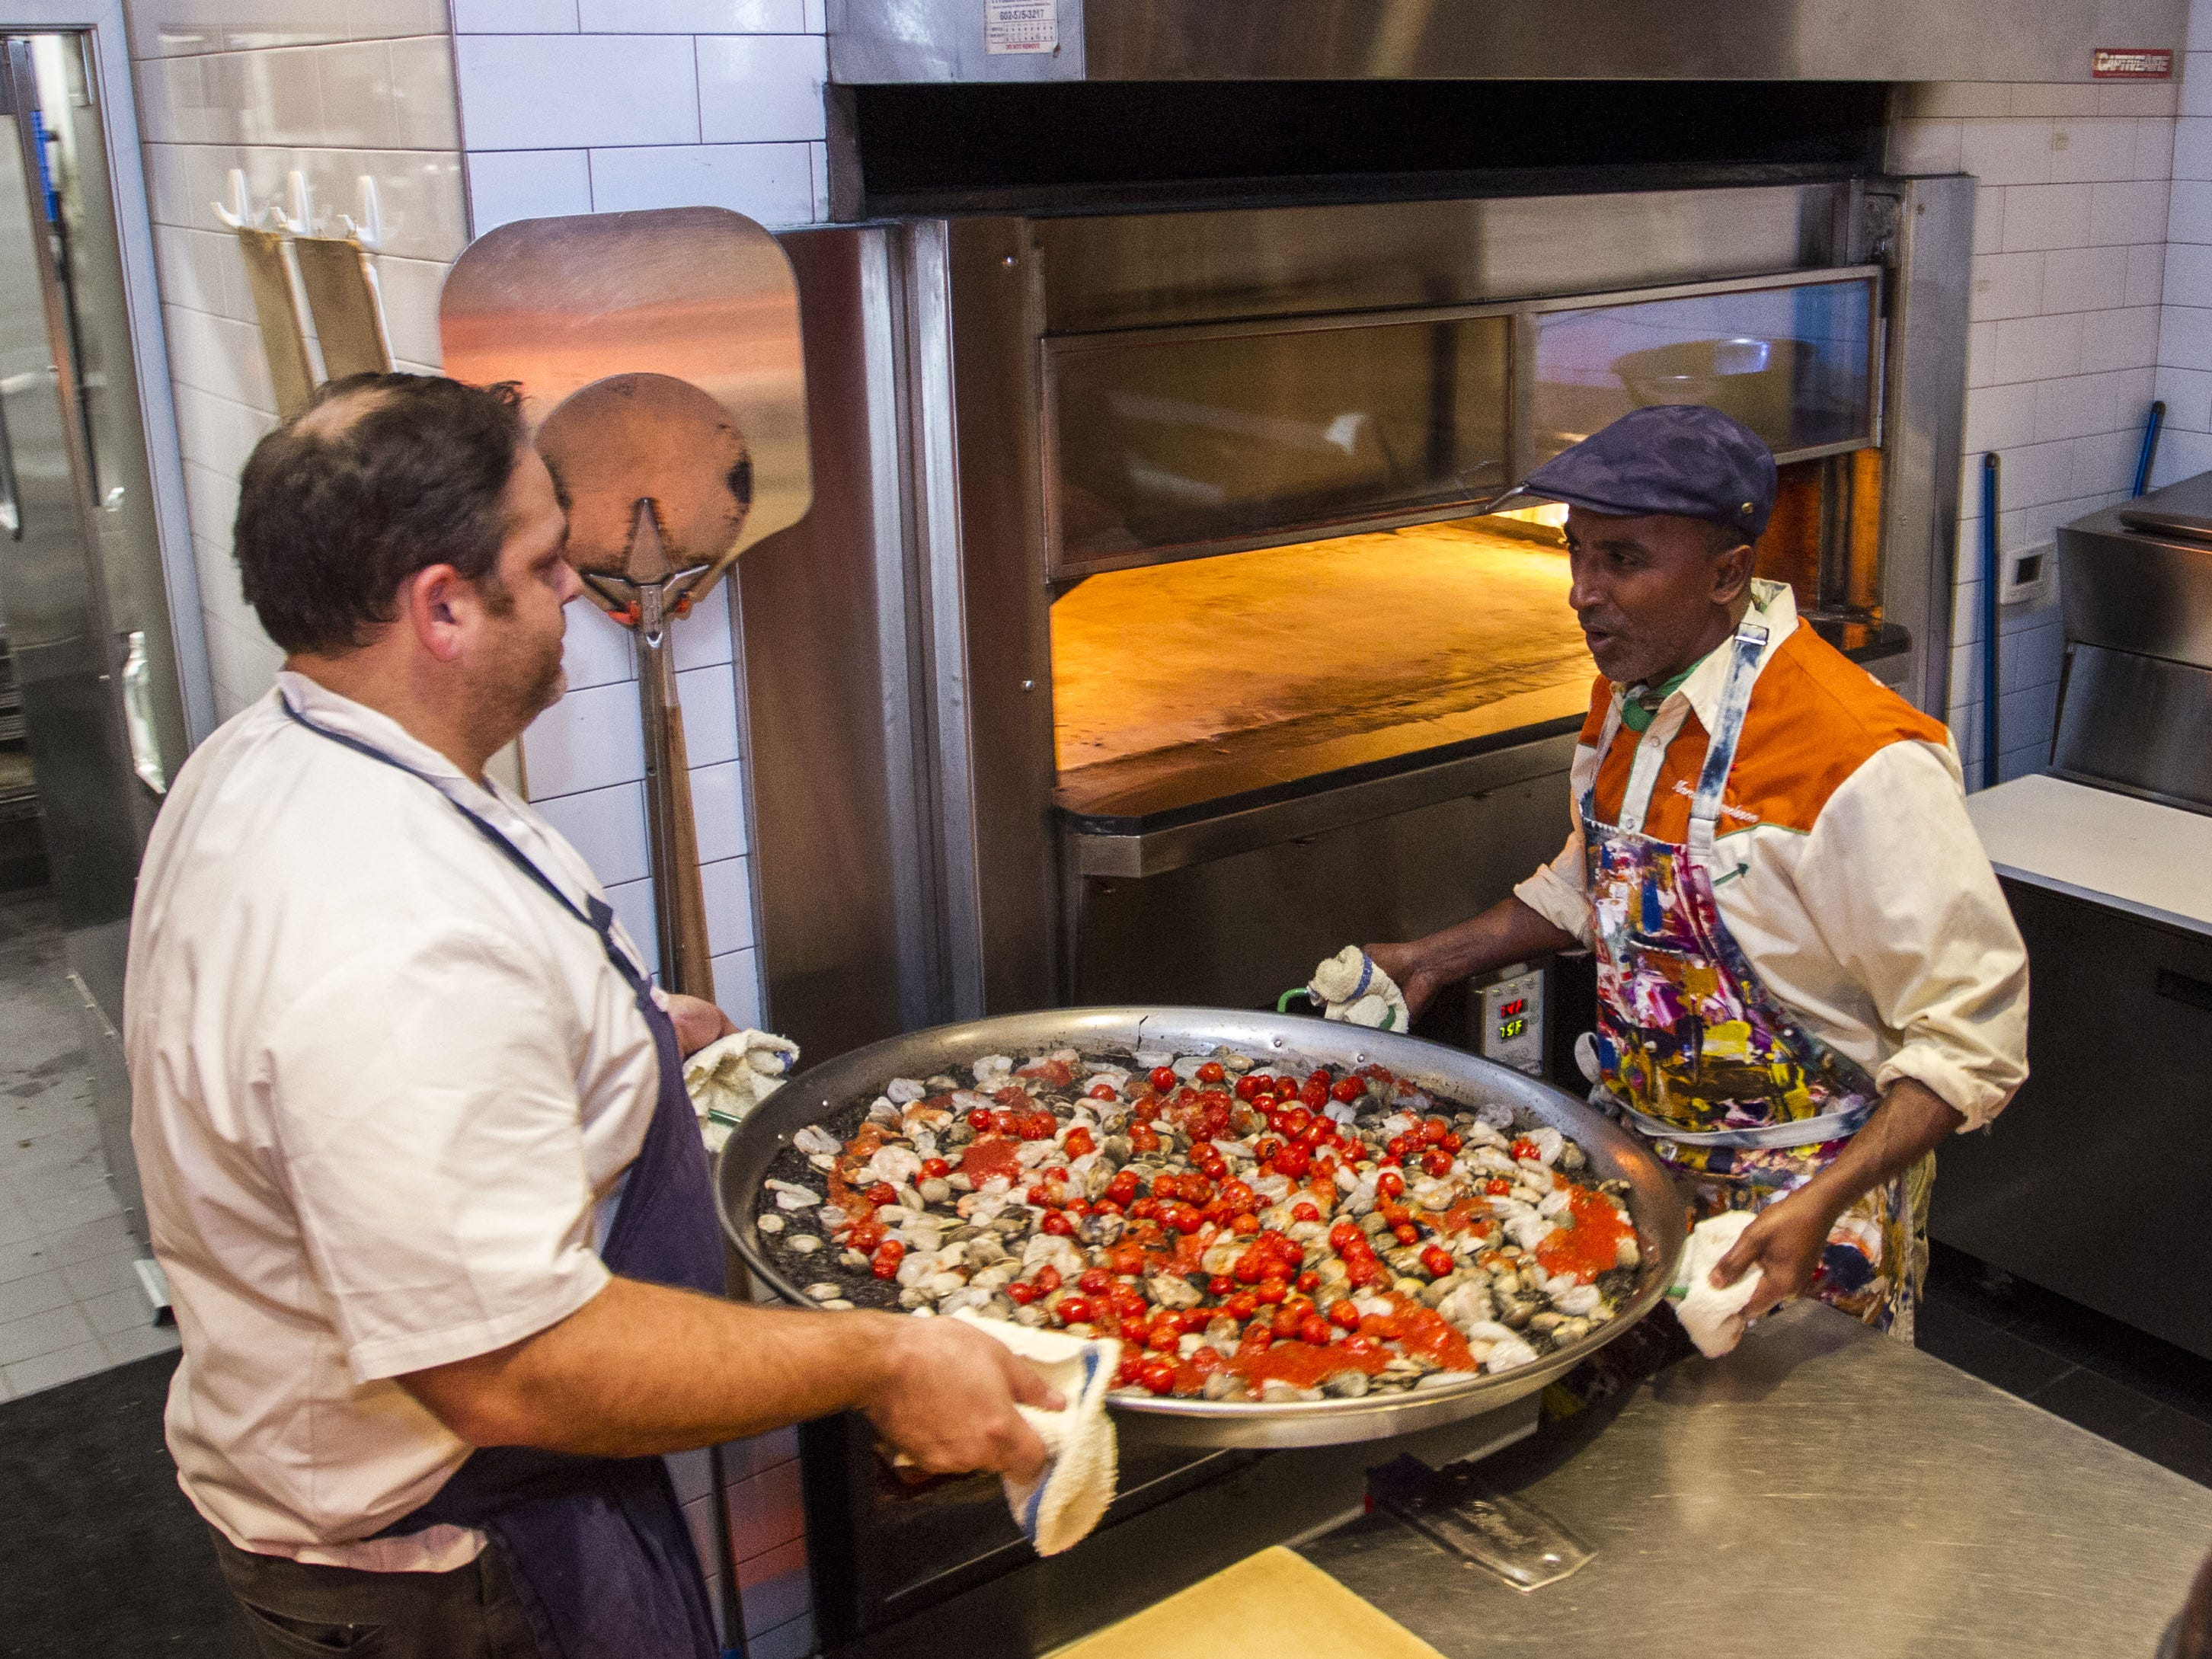 Chef Marcus Samuelsson gets some help placing the paella in the oven during the exclusive kickoff dining event at Mora Italian for azcentral Wine & Food Experience.